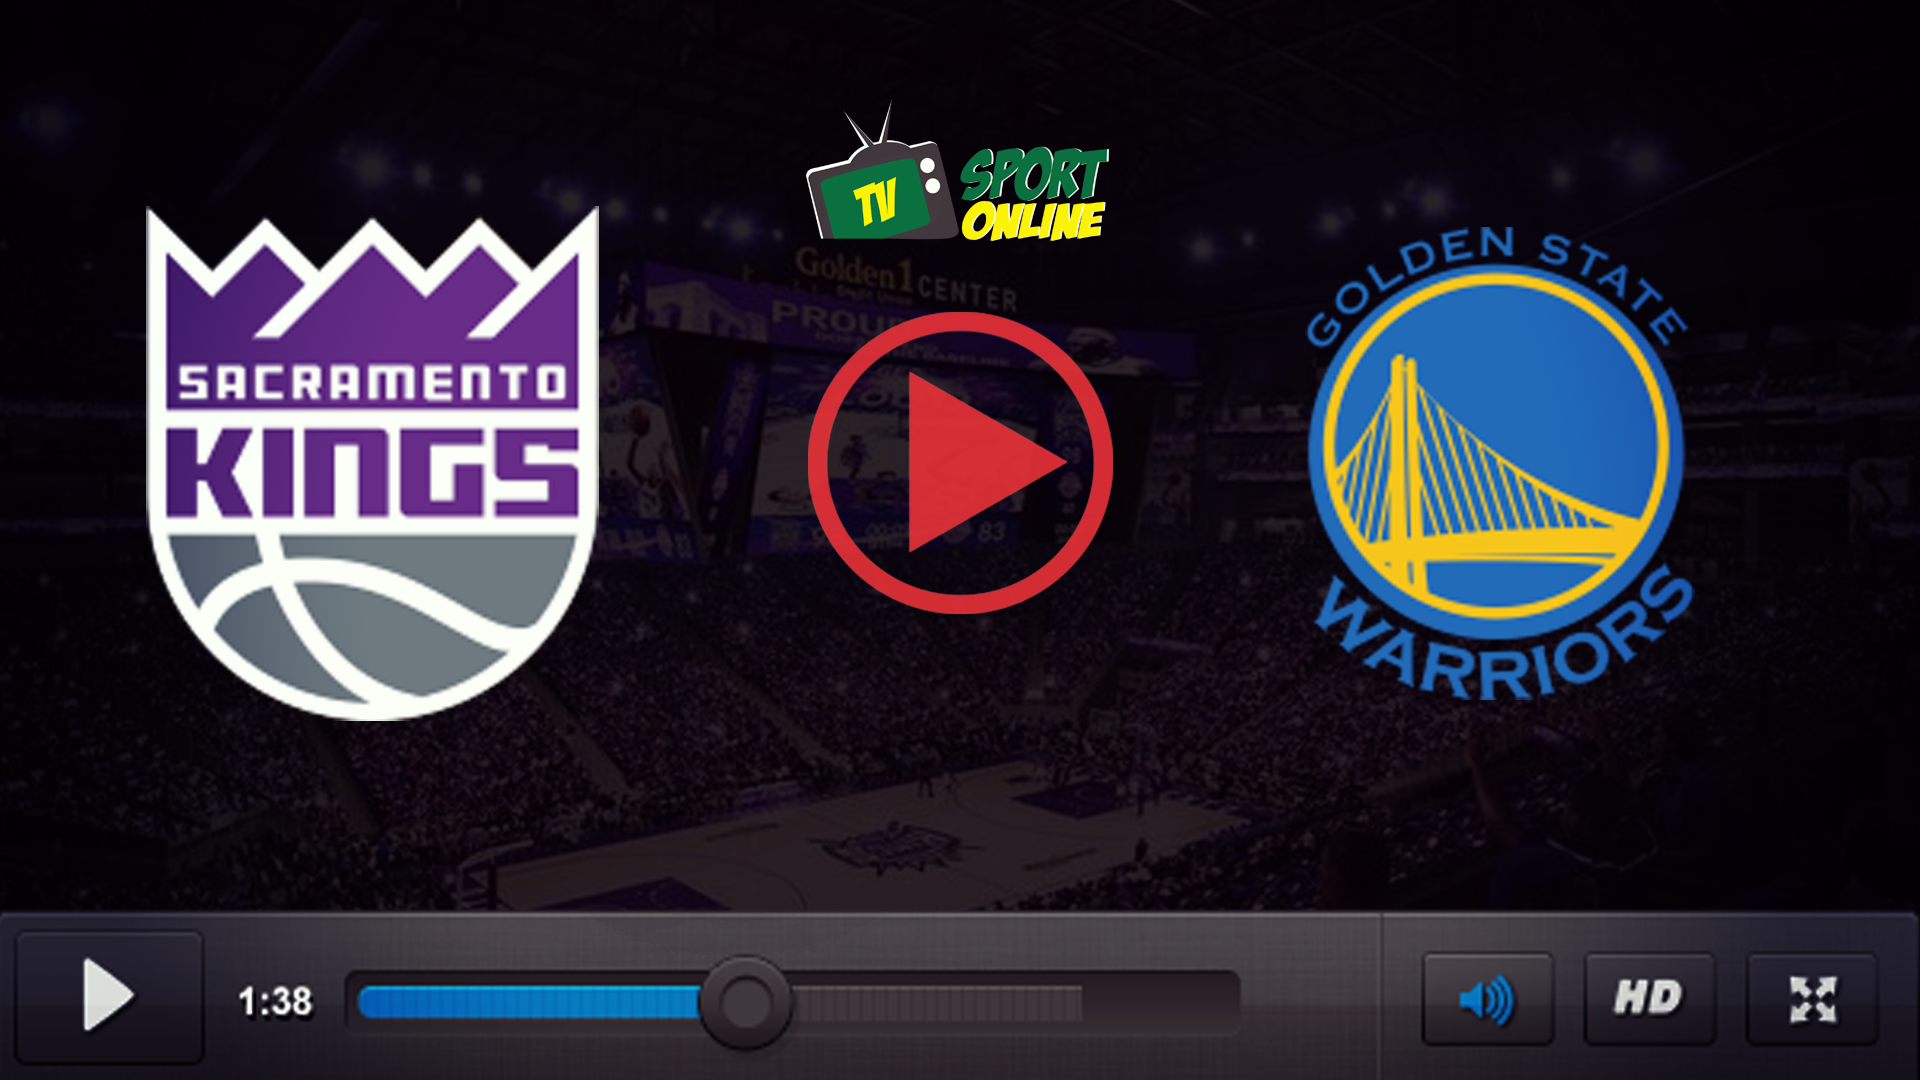 Watch Live Stream Sacramento Kings – Golden State Warriors